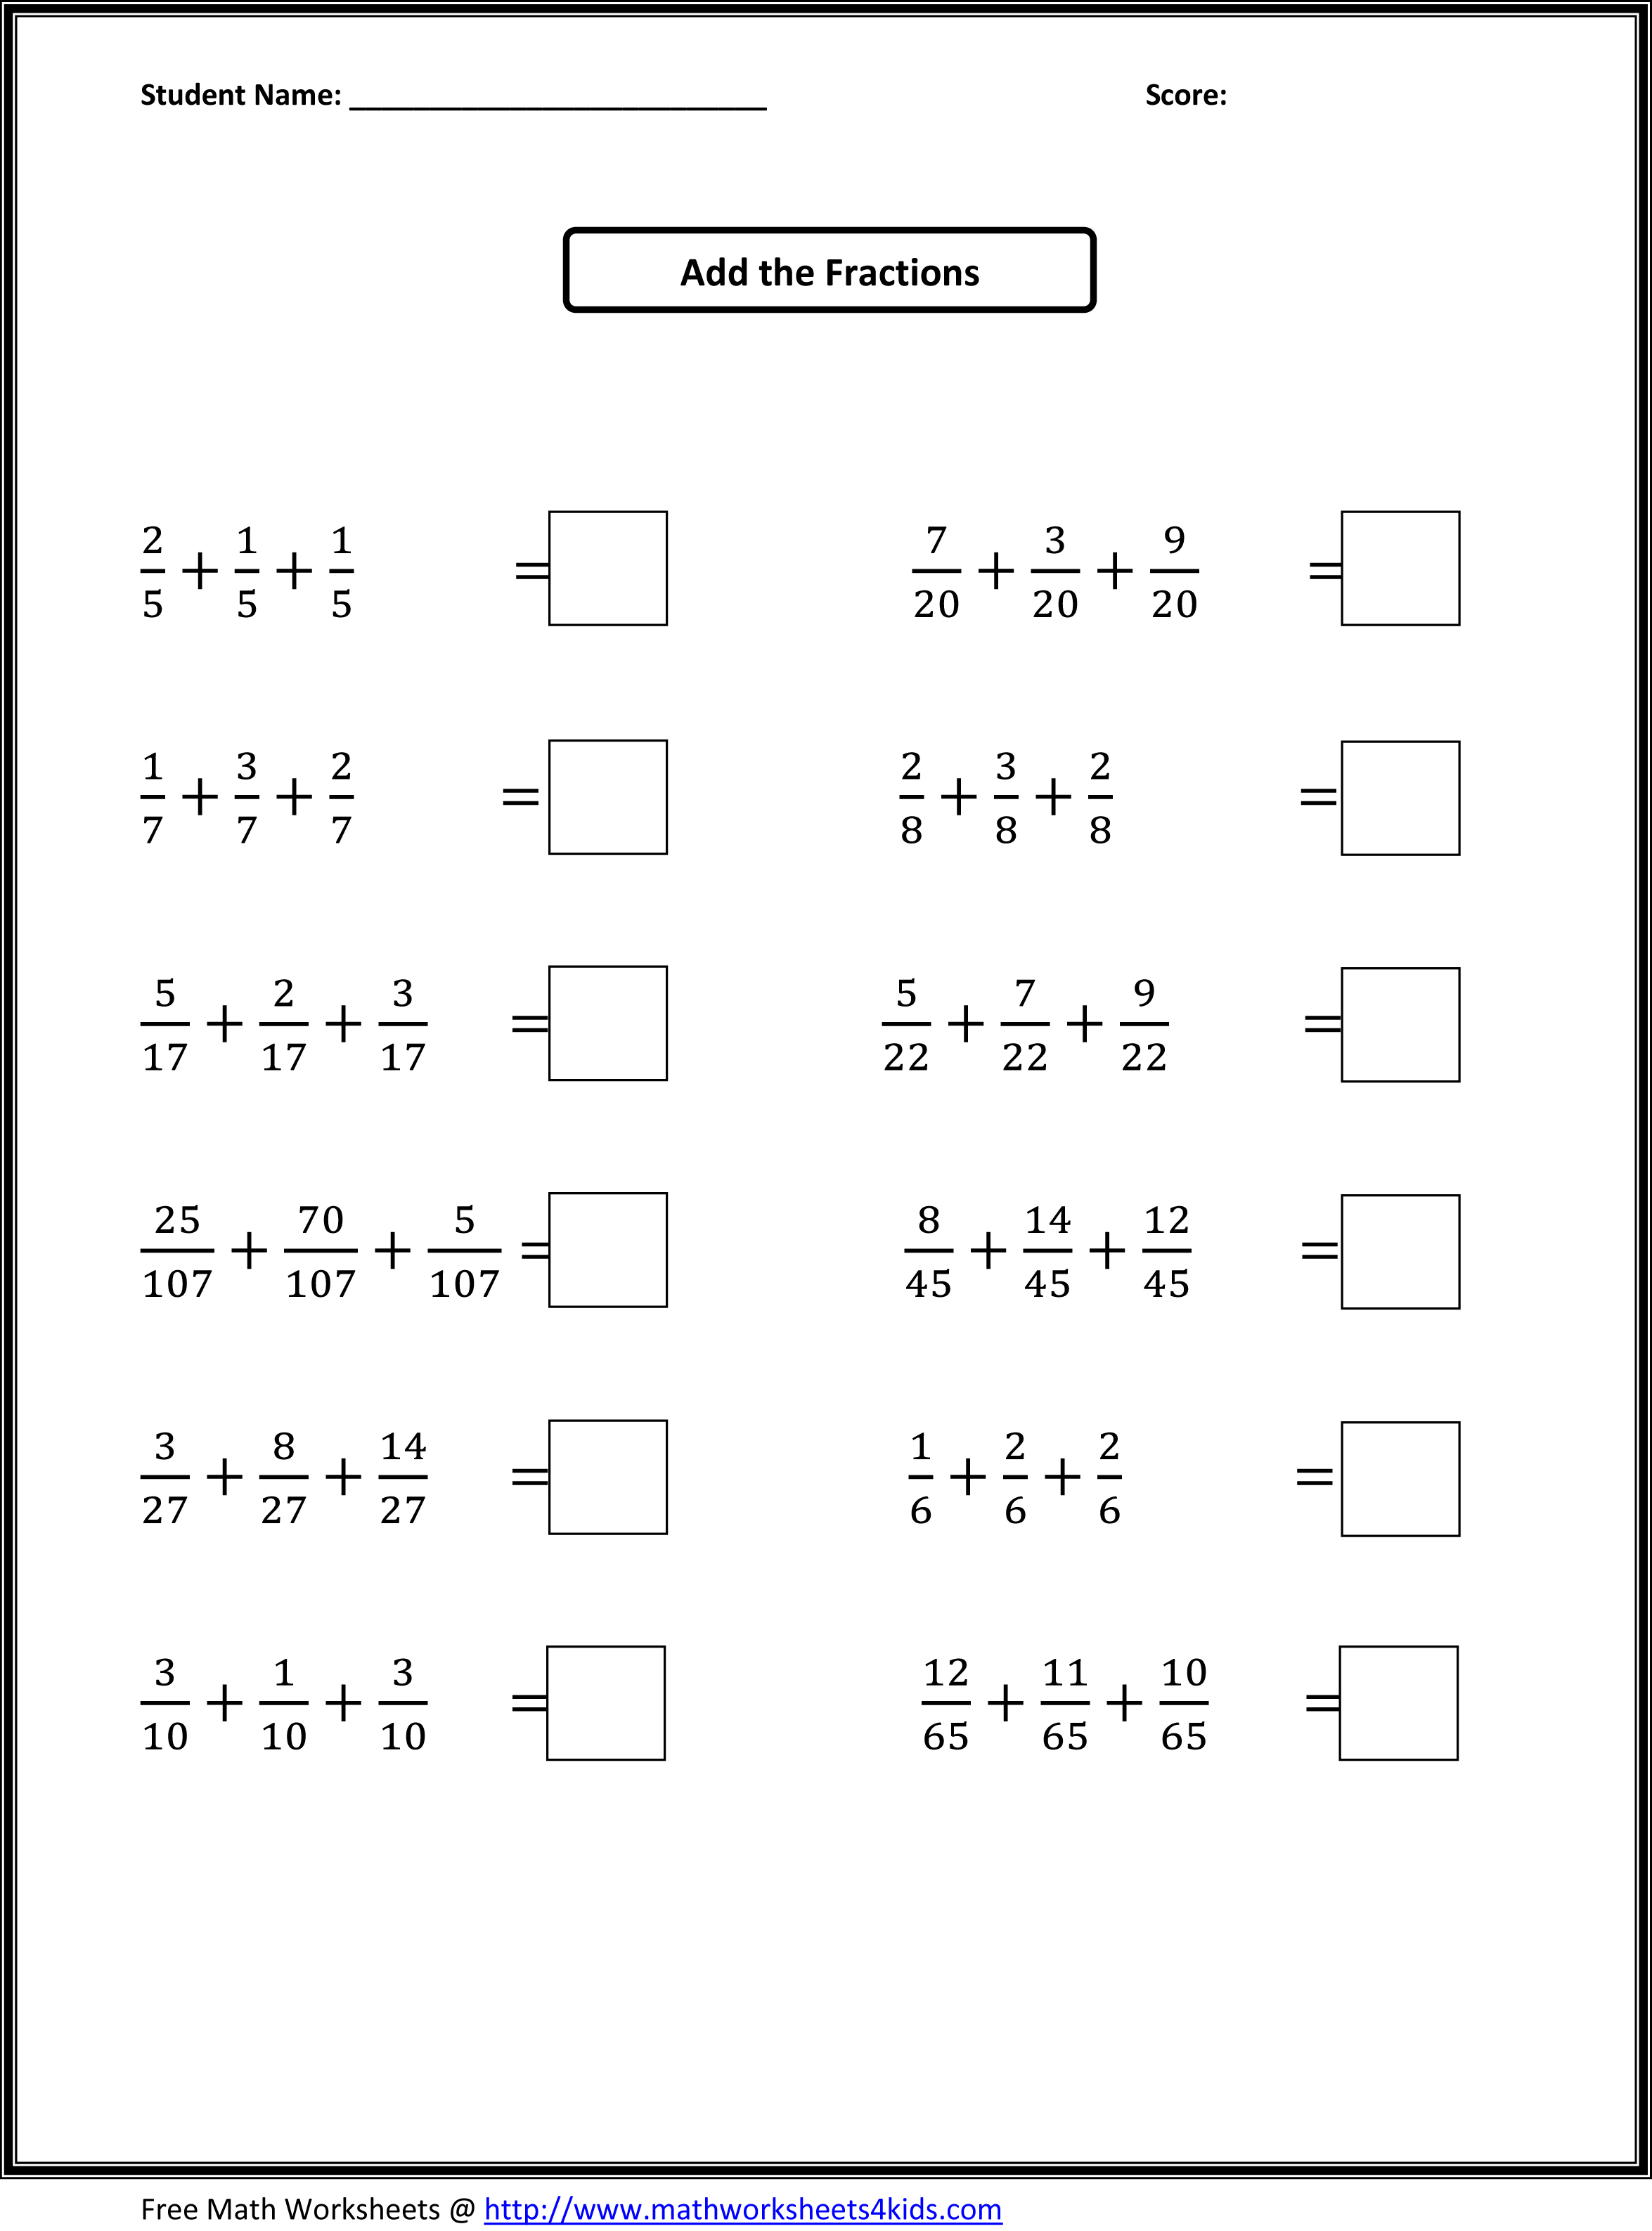 Hardest Math Worksheet 8th Grade